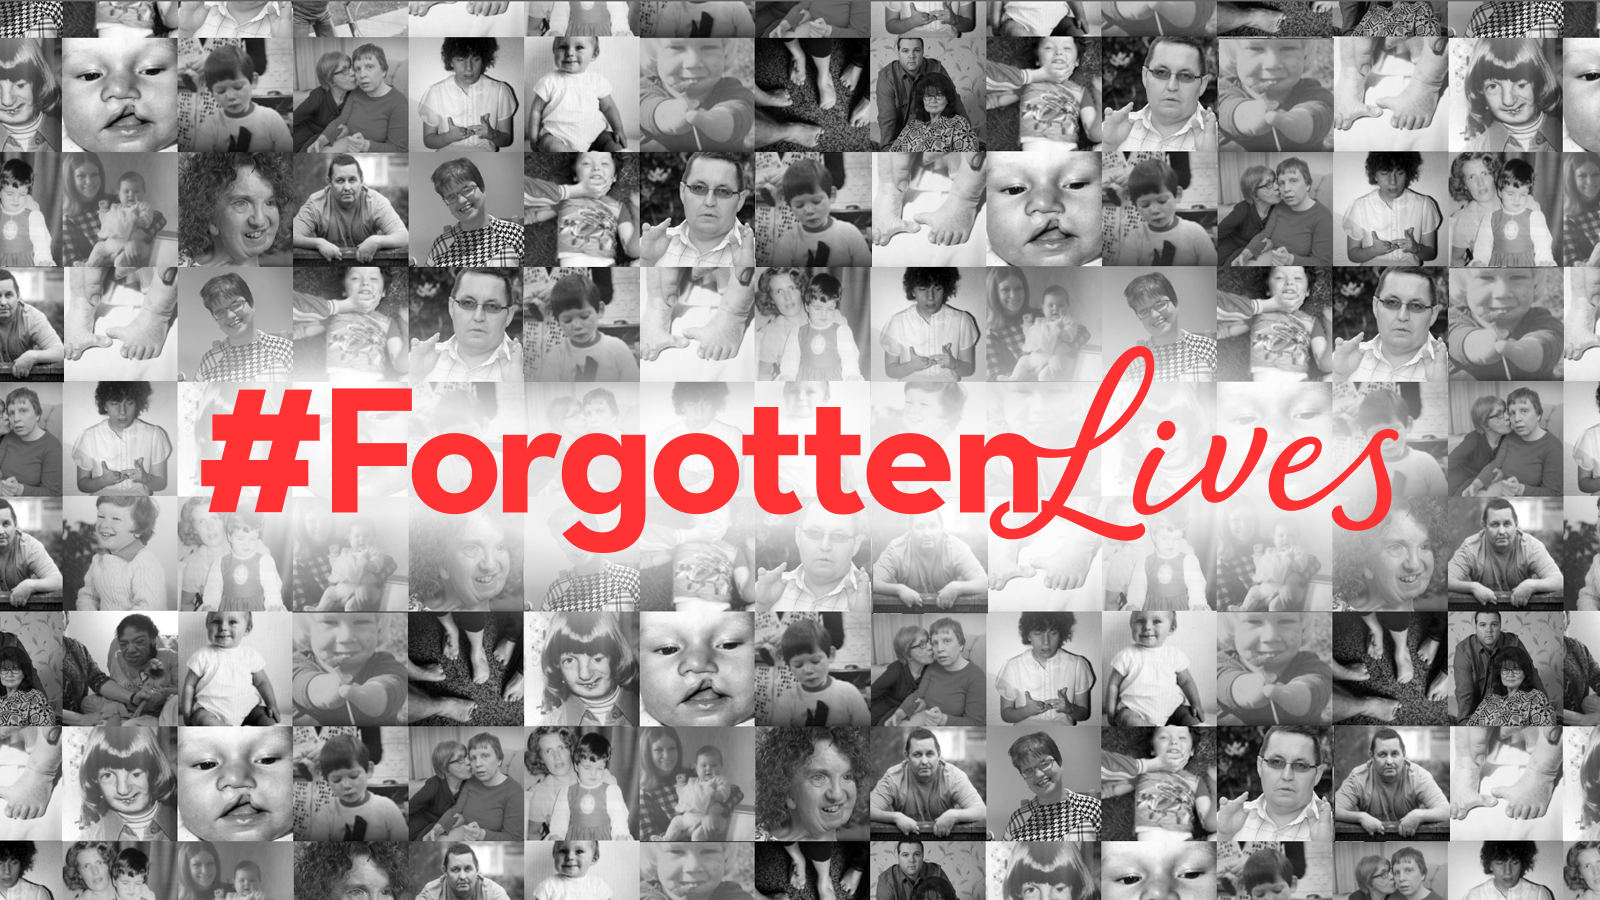 Forgotten lives petition